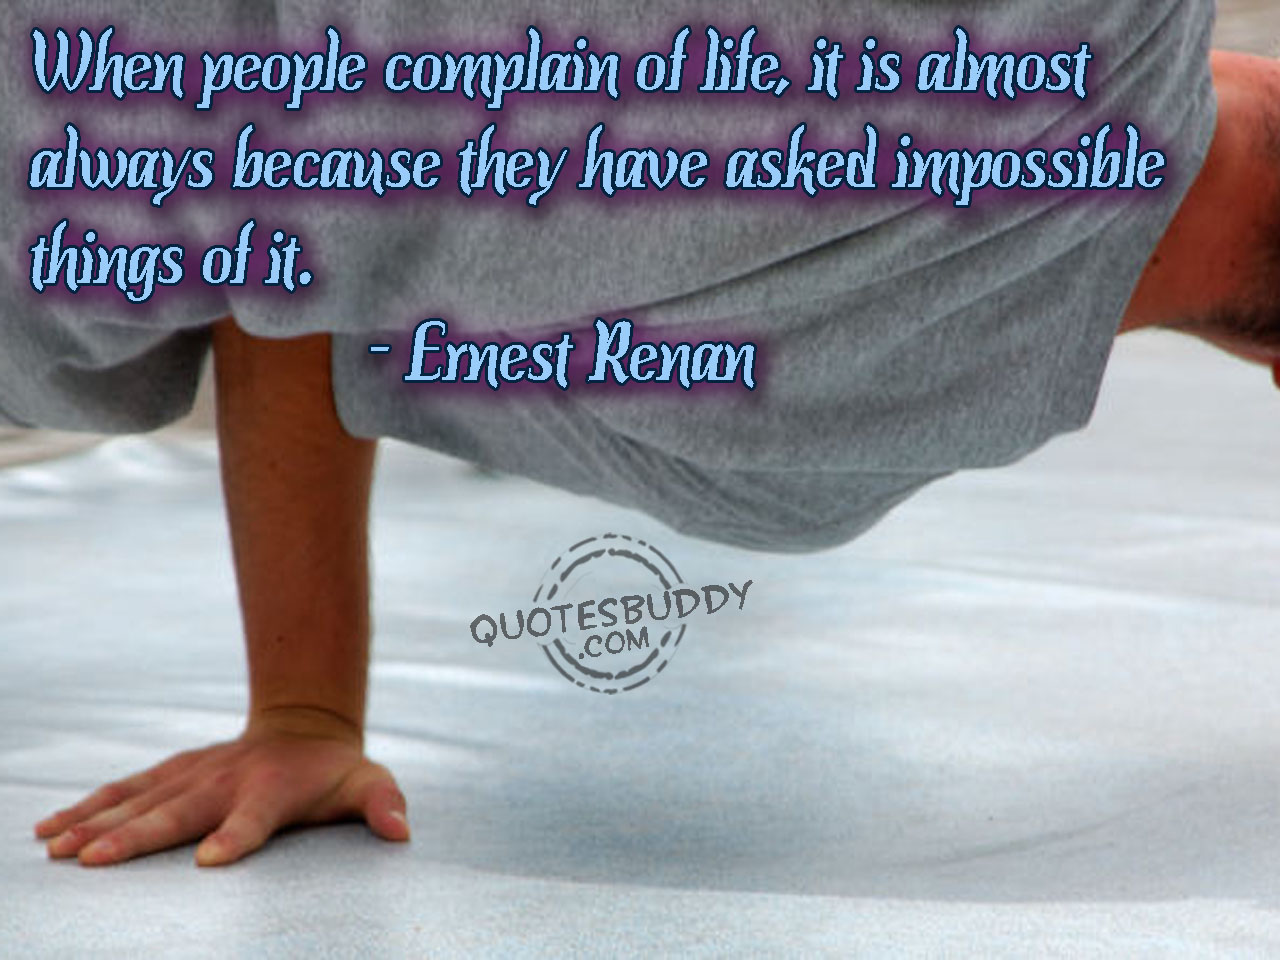 When People Complain Of Life, It Is Almost Always Because They Have Asked Impossible Things Of It. - Ernest Renan